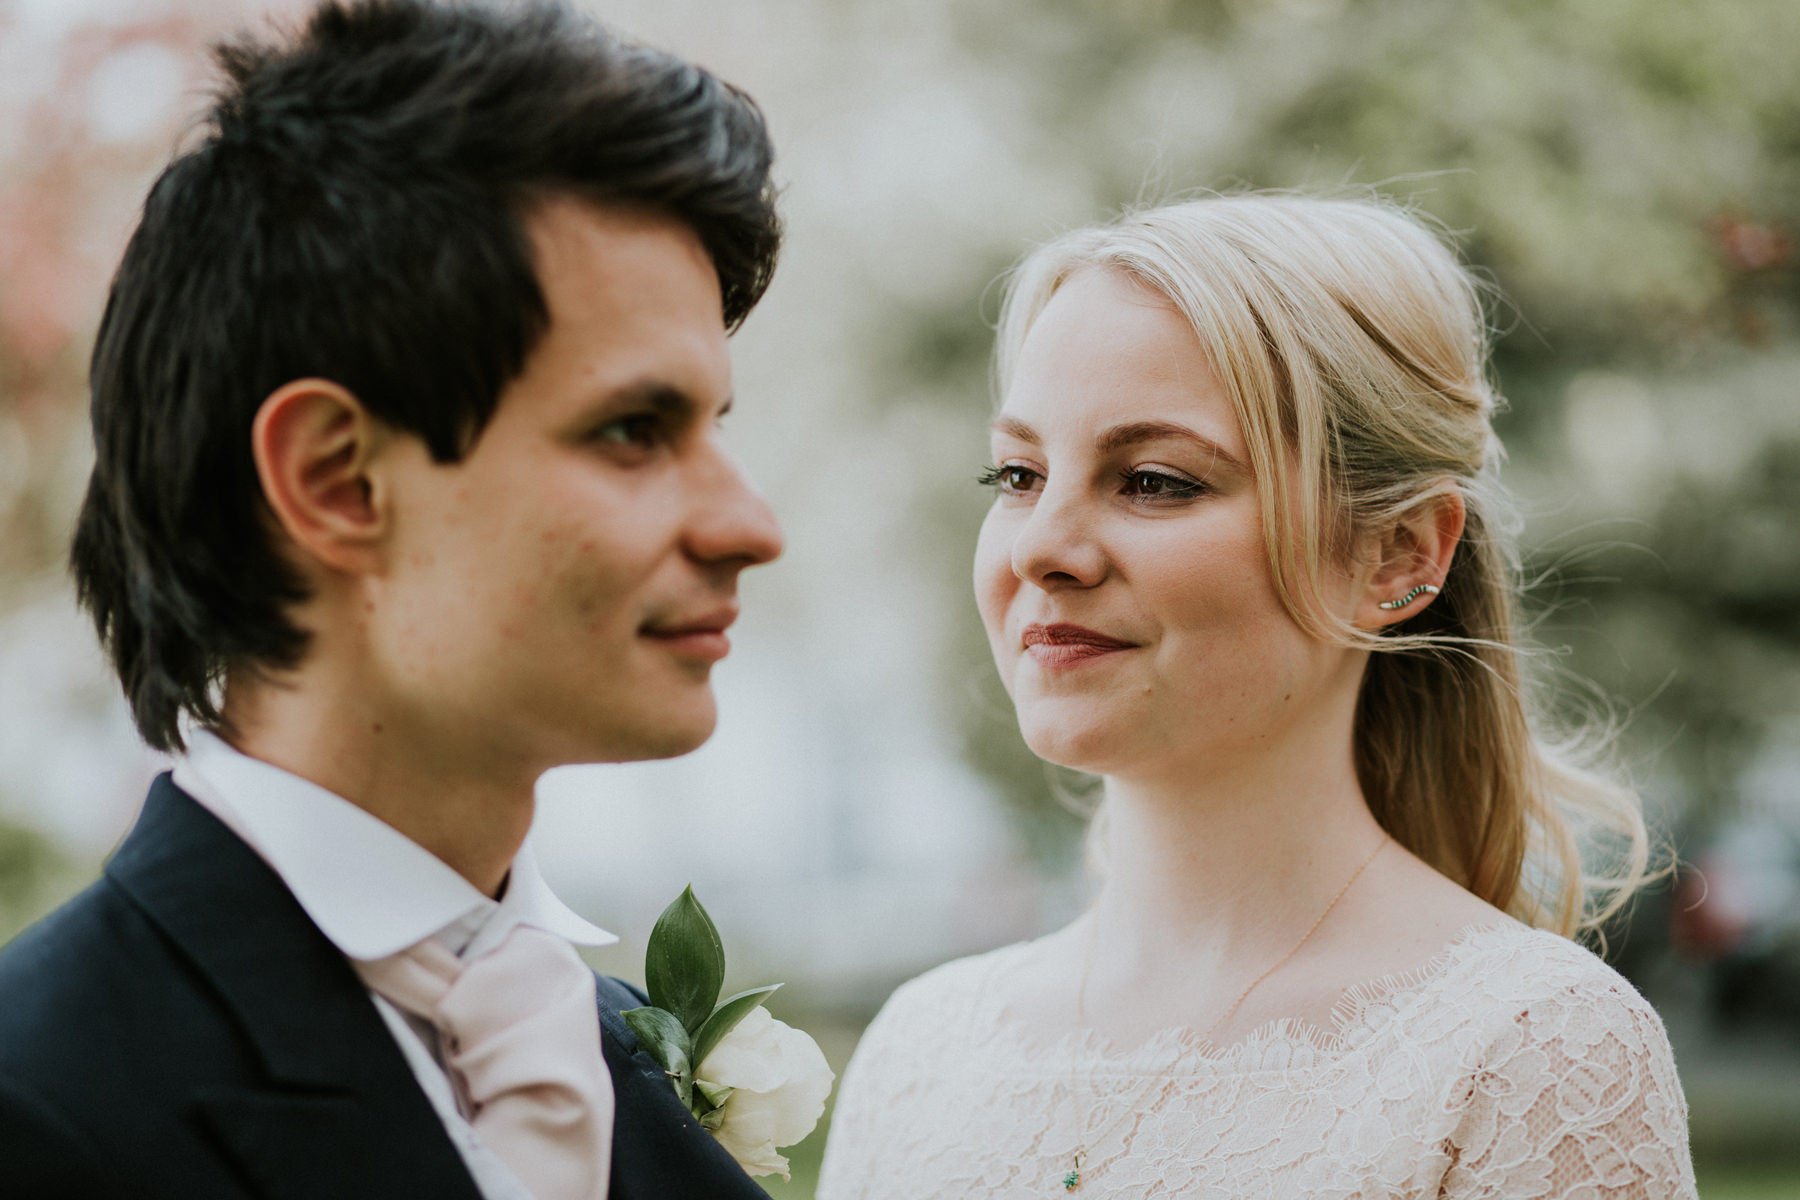 LD-447-bride-groom-couple-portraits-clapham-London-alternative-reportage-wedding-photographer.jpg